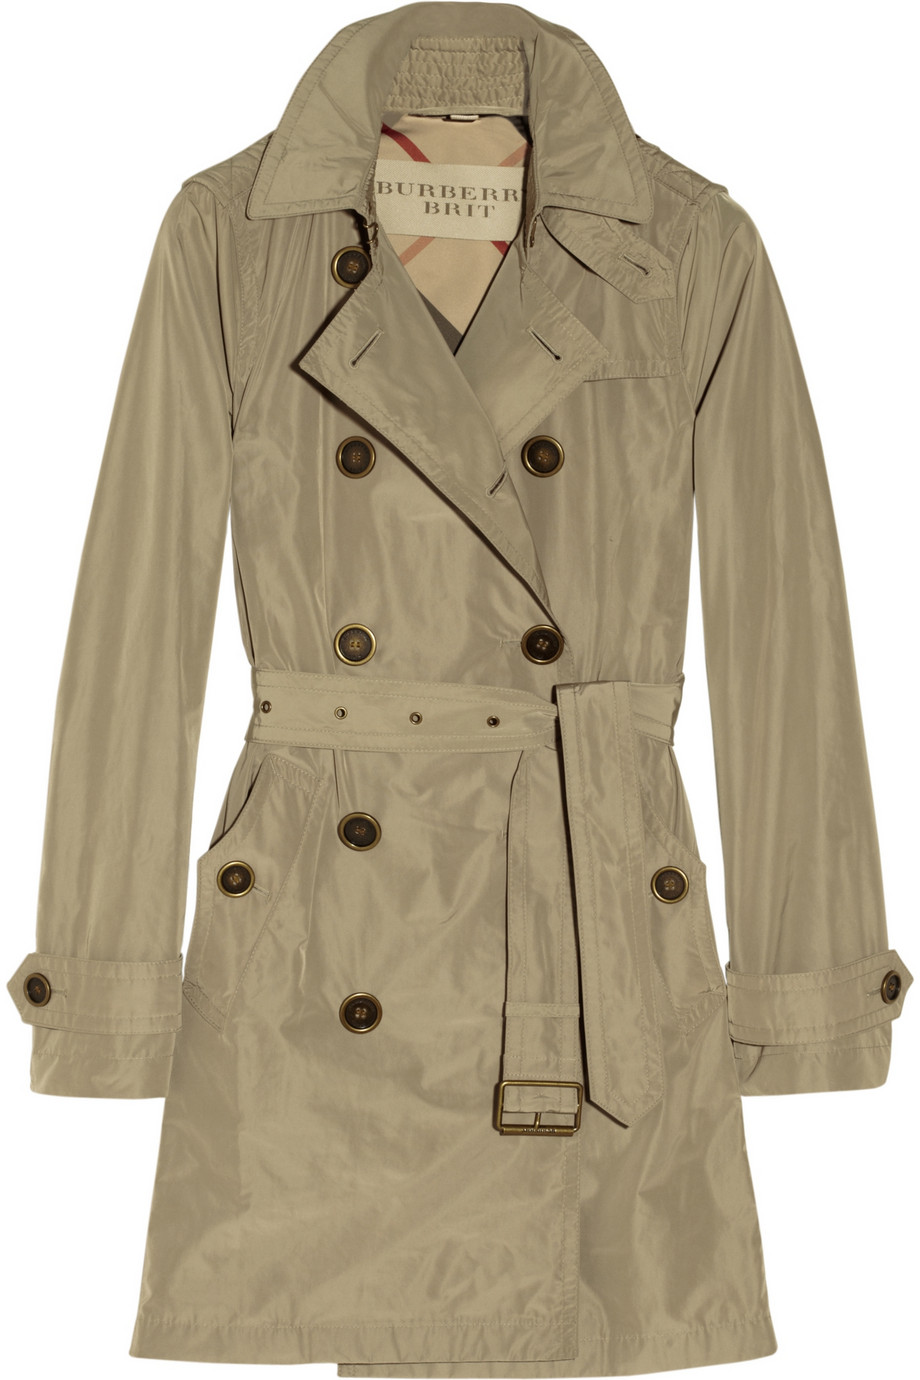 burberry brit hooded packaway trench coat in beige neutrals. Black Bedroom Furniture Sets. Home Design Ideas